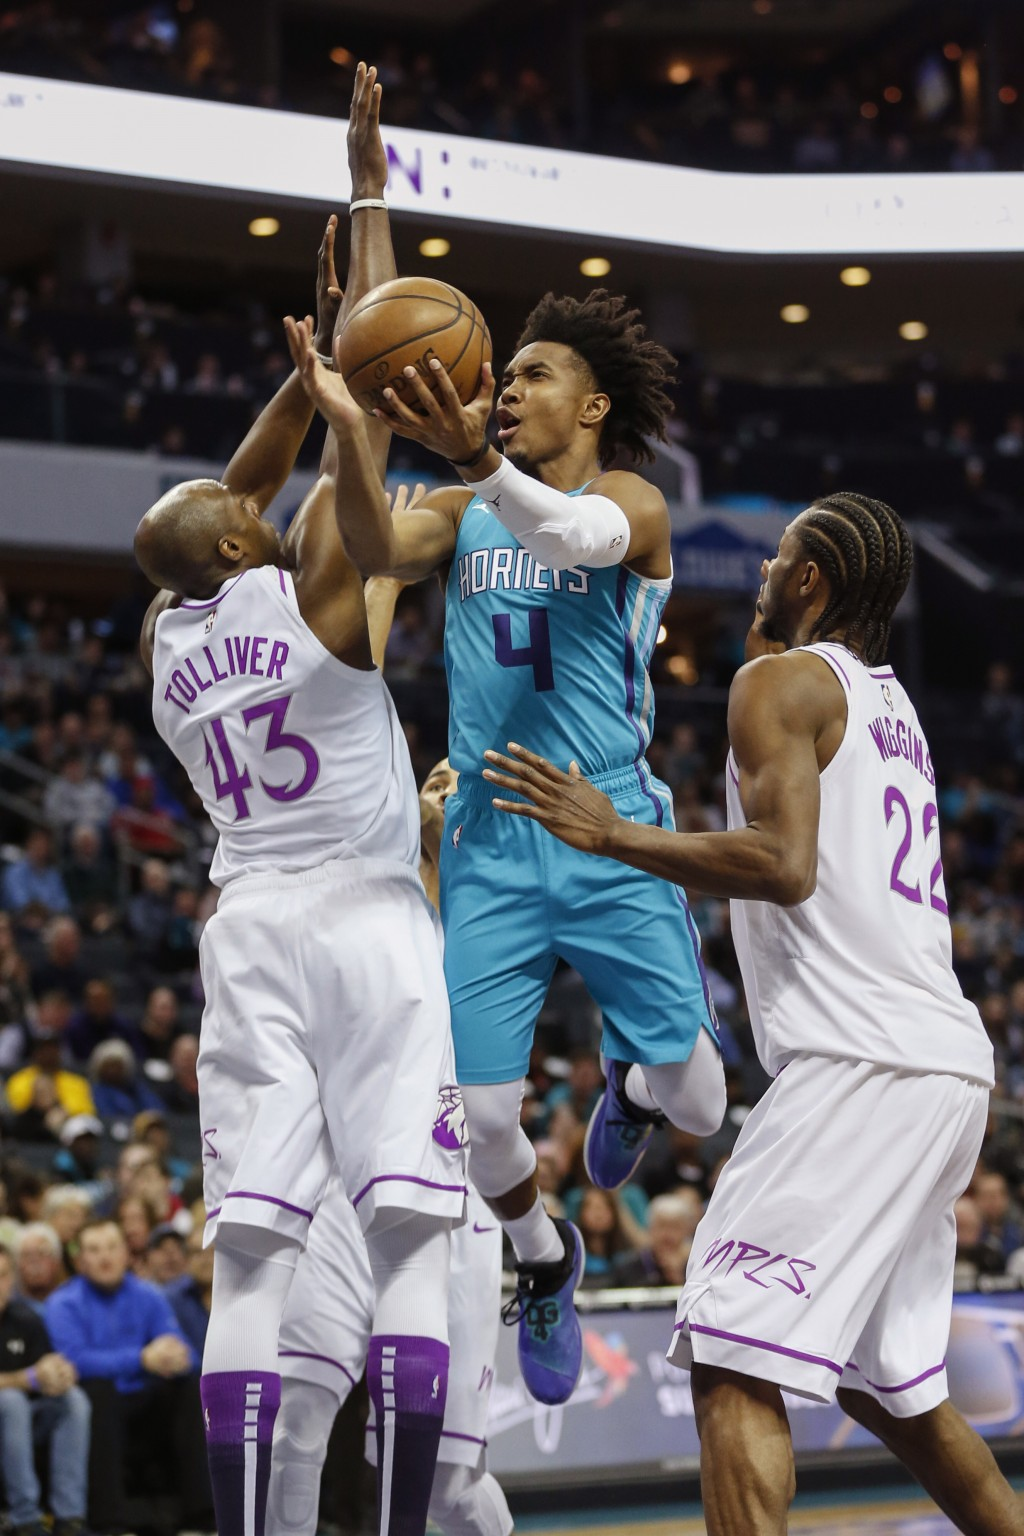 Charlotte Hornets guard Devonte' Graham (4) drives between Minnesota Timberwolves forwards Anthony Tolliver, left, and Andrew Wiggins (22) in the firs